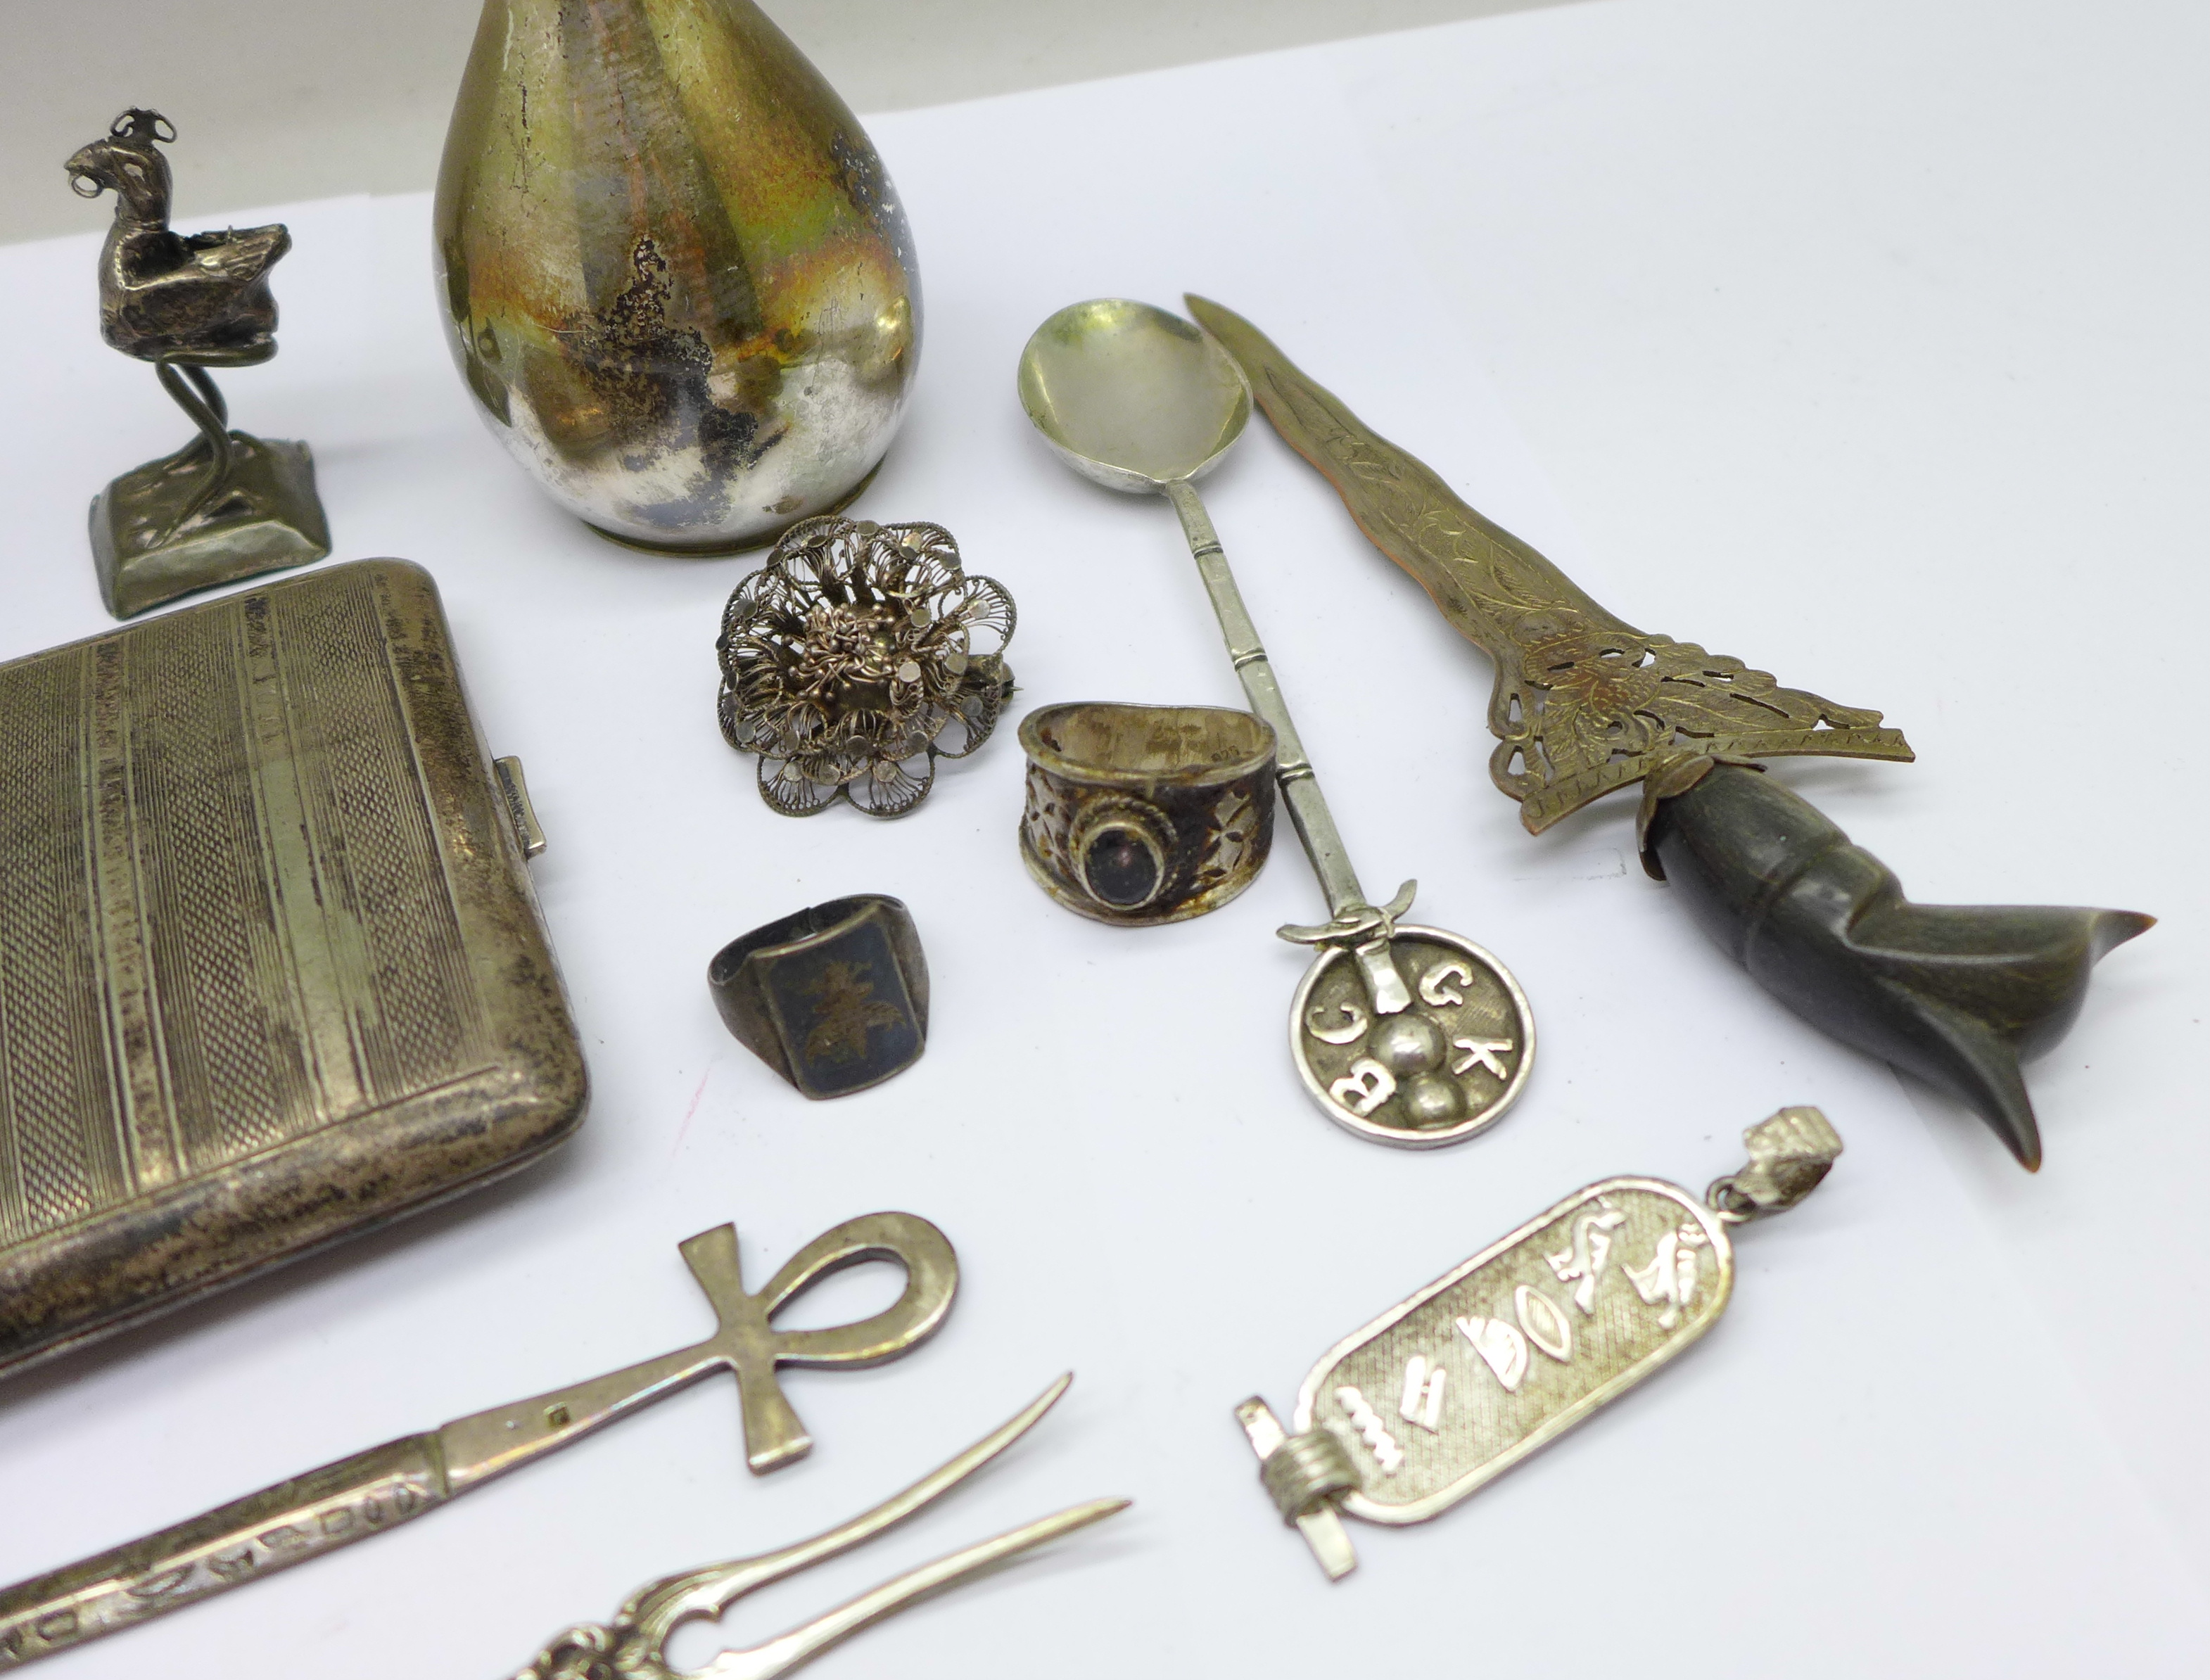 A collection of continental silver including a cigarette case, jug, rings, spoon, etc., 280g - Image 2 of 7